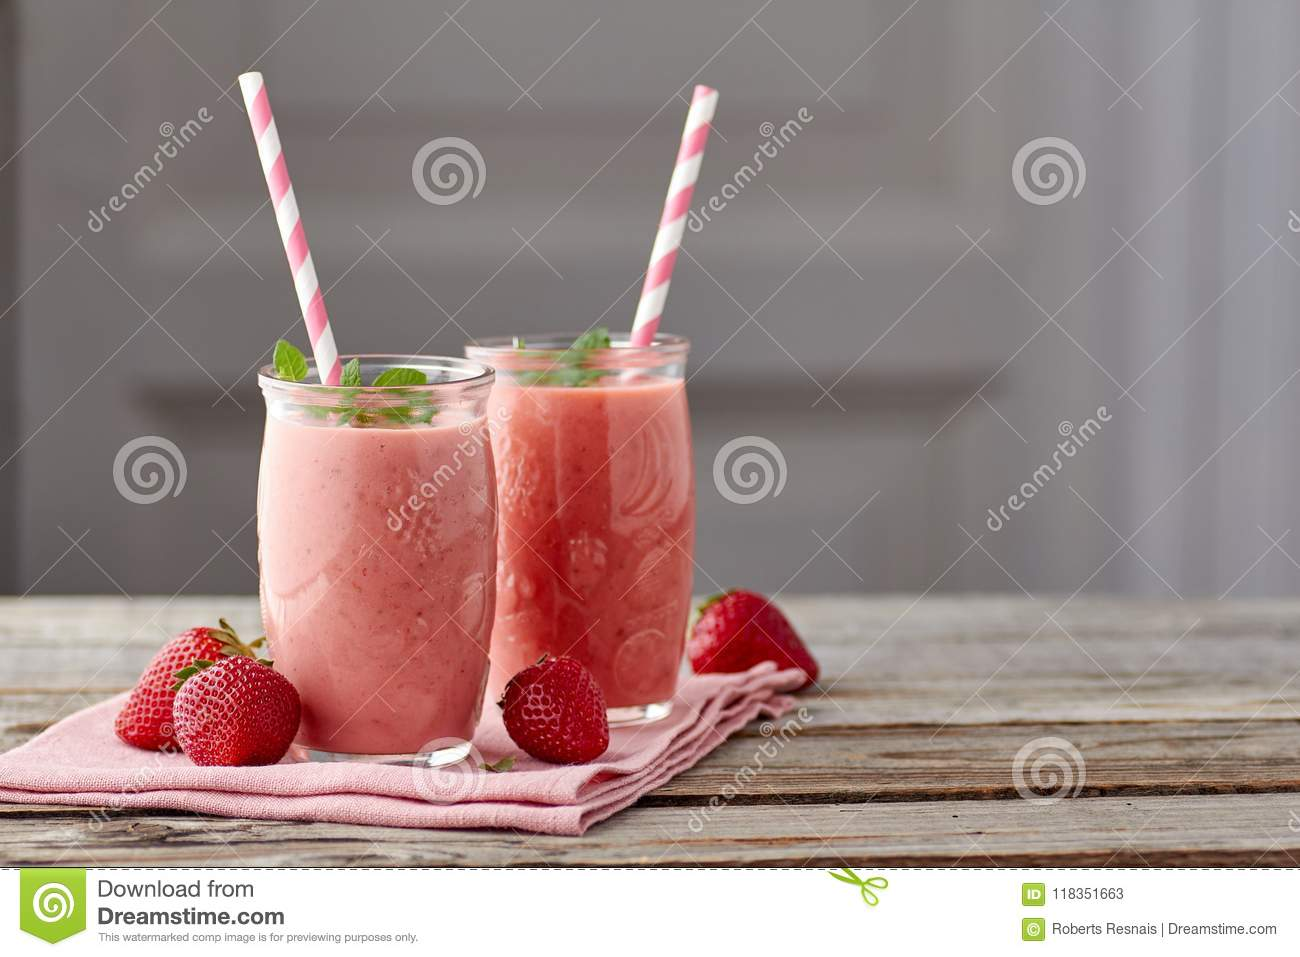 Yogurt and strawberry smoothie in two jars with drinking straw on wooden table